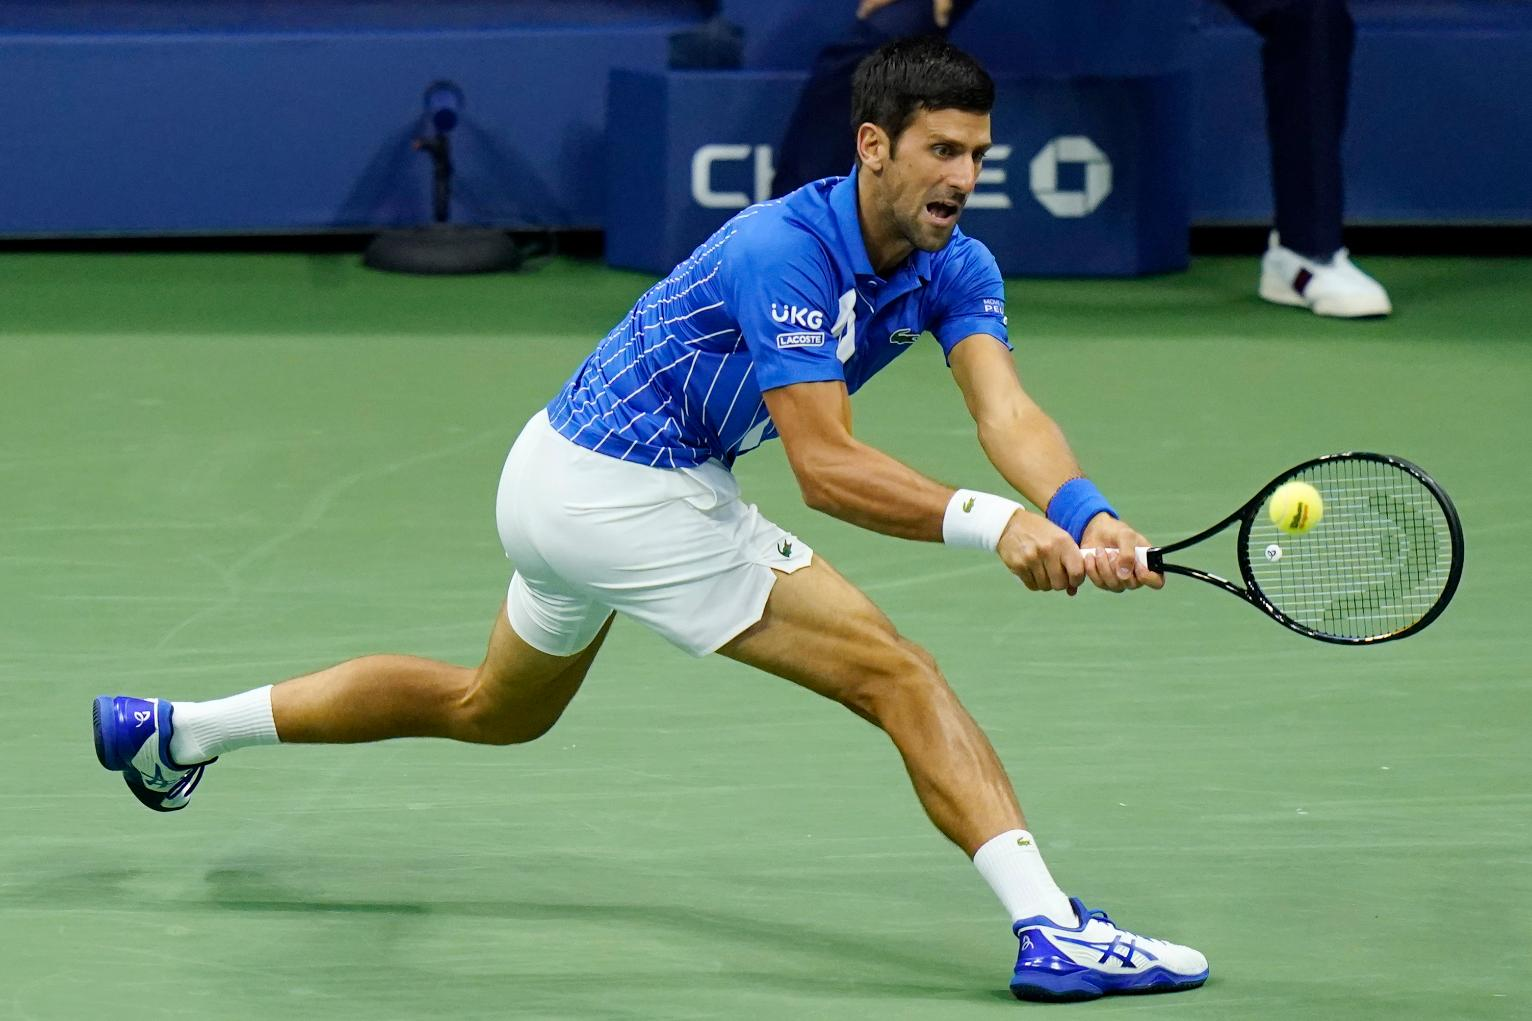 The Latest Still Perfect Novak Djokovic Advances At Us Open Sports News Us News